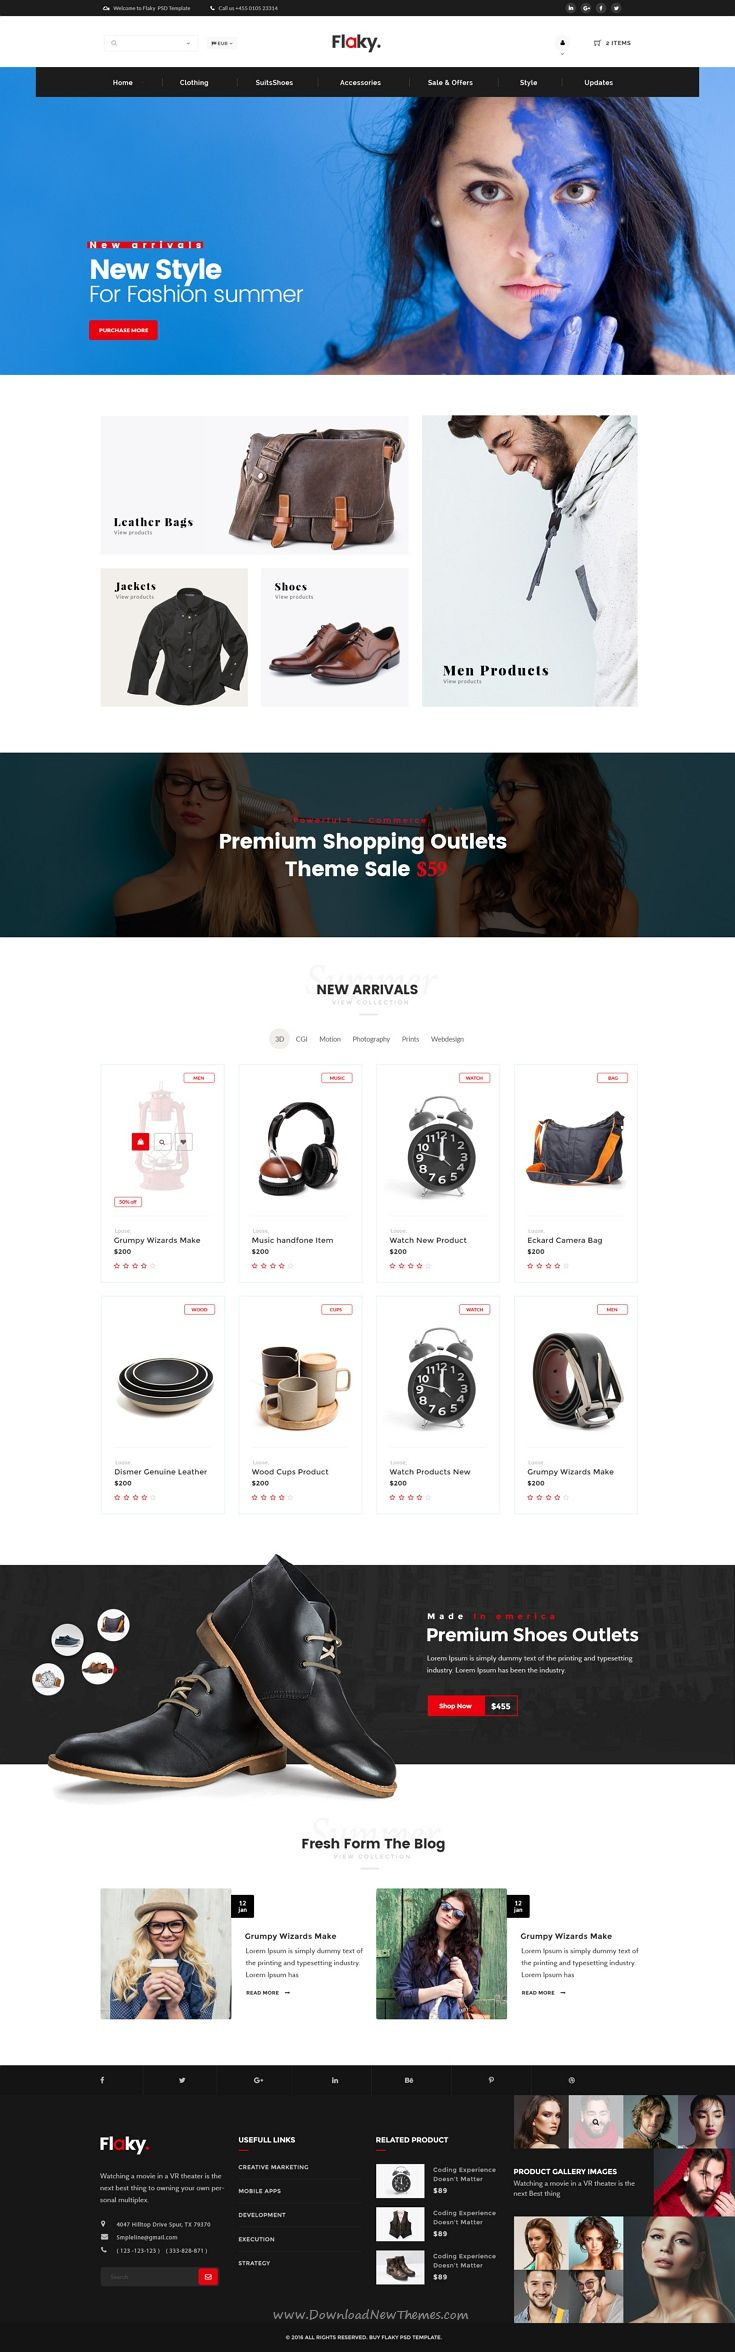 Flaky is a completely layered and fully managed #PSD template for a simple, creative, minimalist #online #shop #website. Download Now!